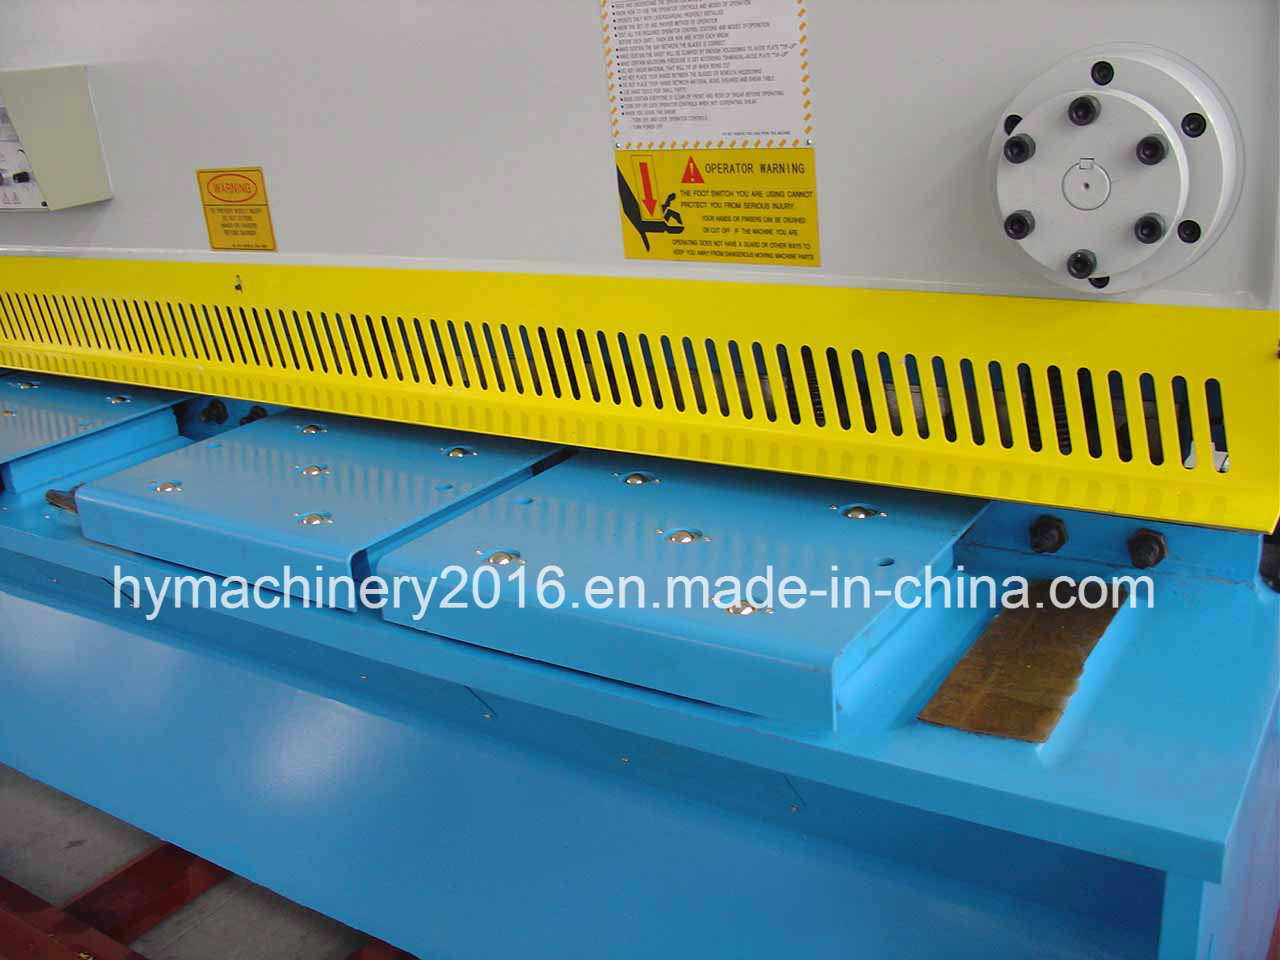 QC11y-12X2500 E21s Control Hydraulic Guillotine Shearing Machinery